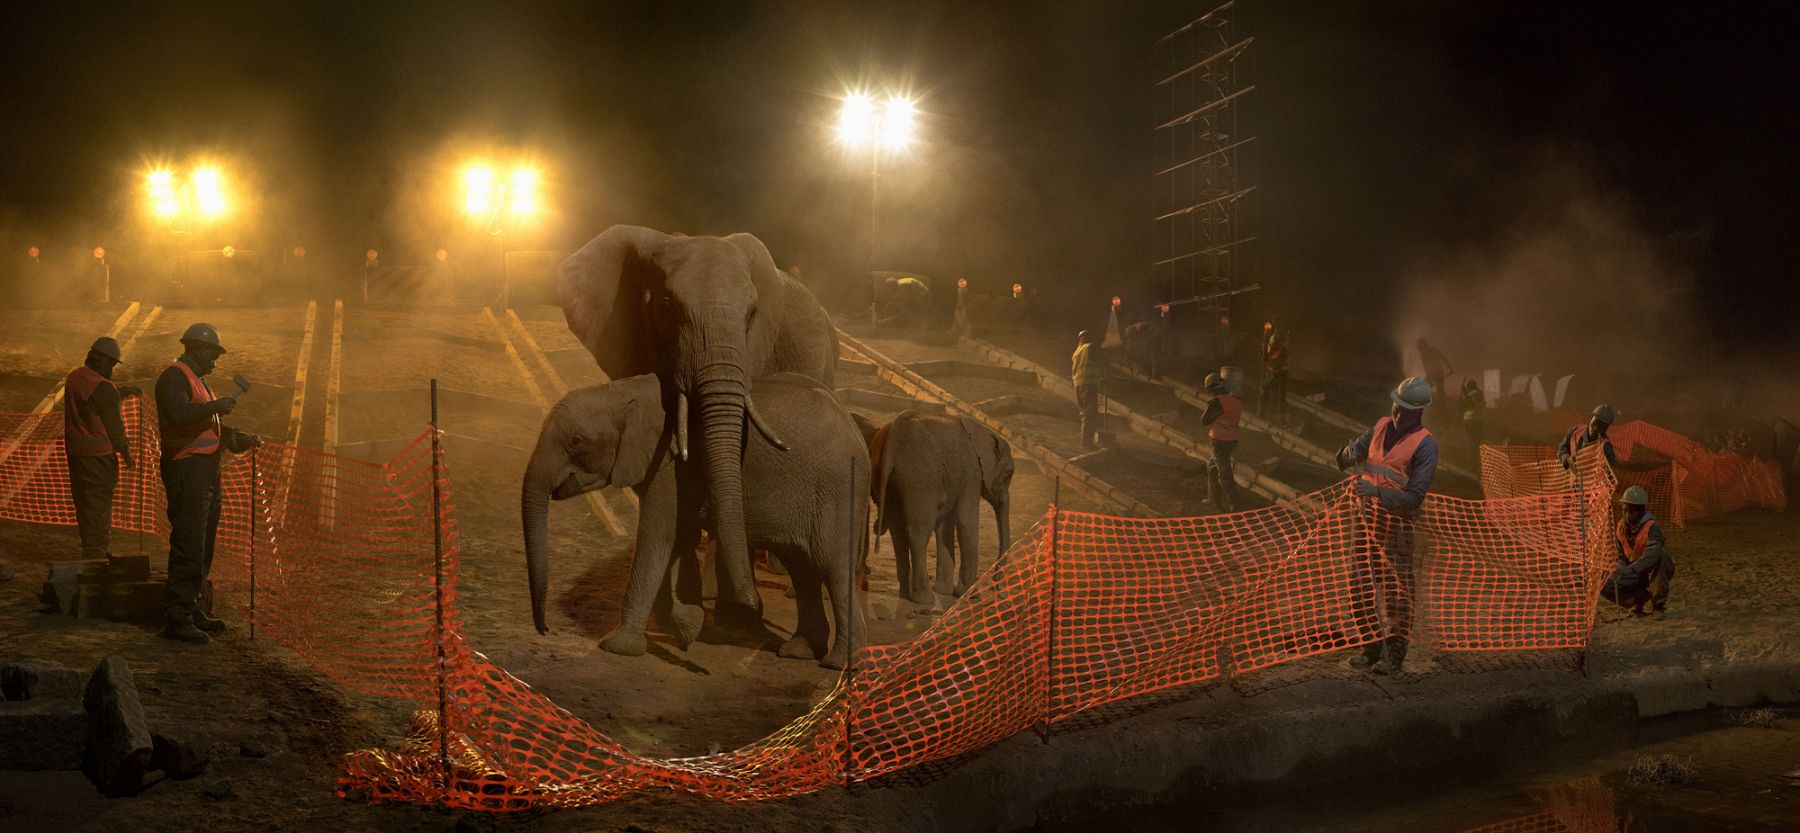 HIGHWAY CONSTRUCTION WITH ELEPHANTS, WORKERS & FENCE, 2018,